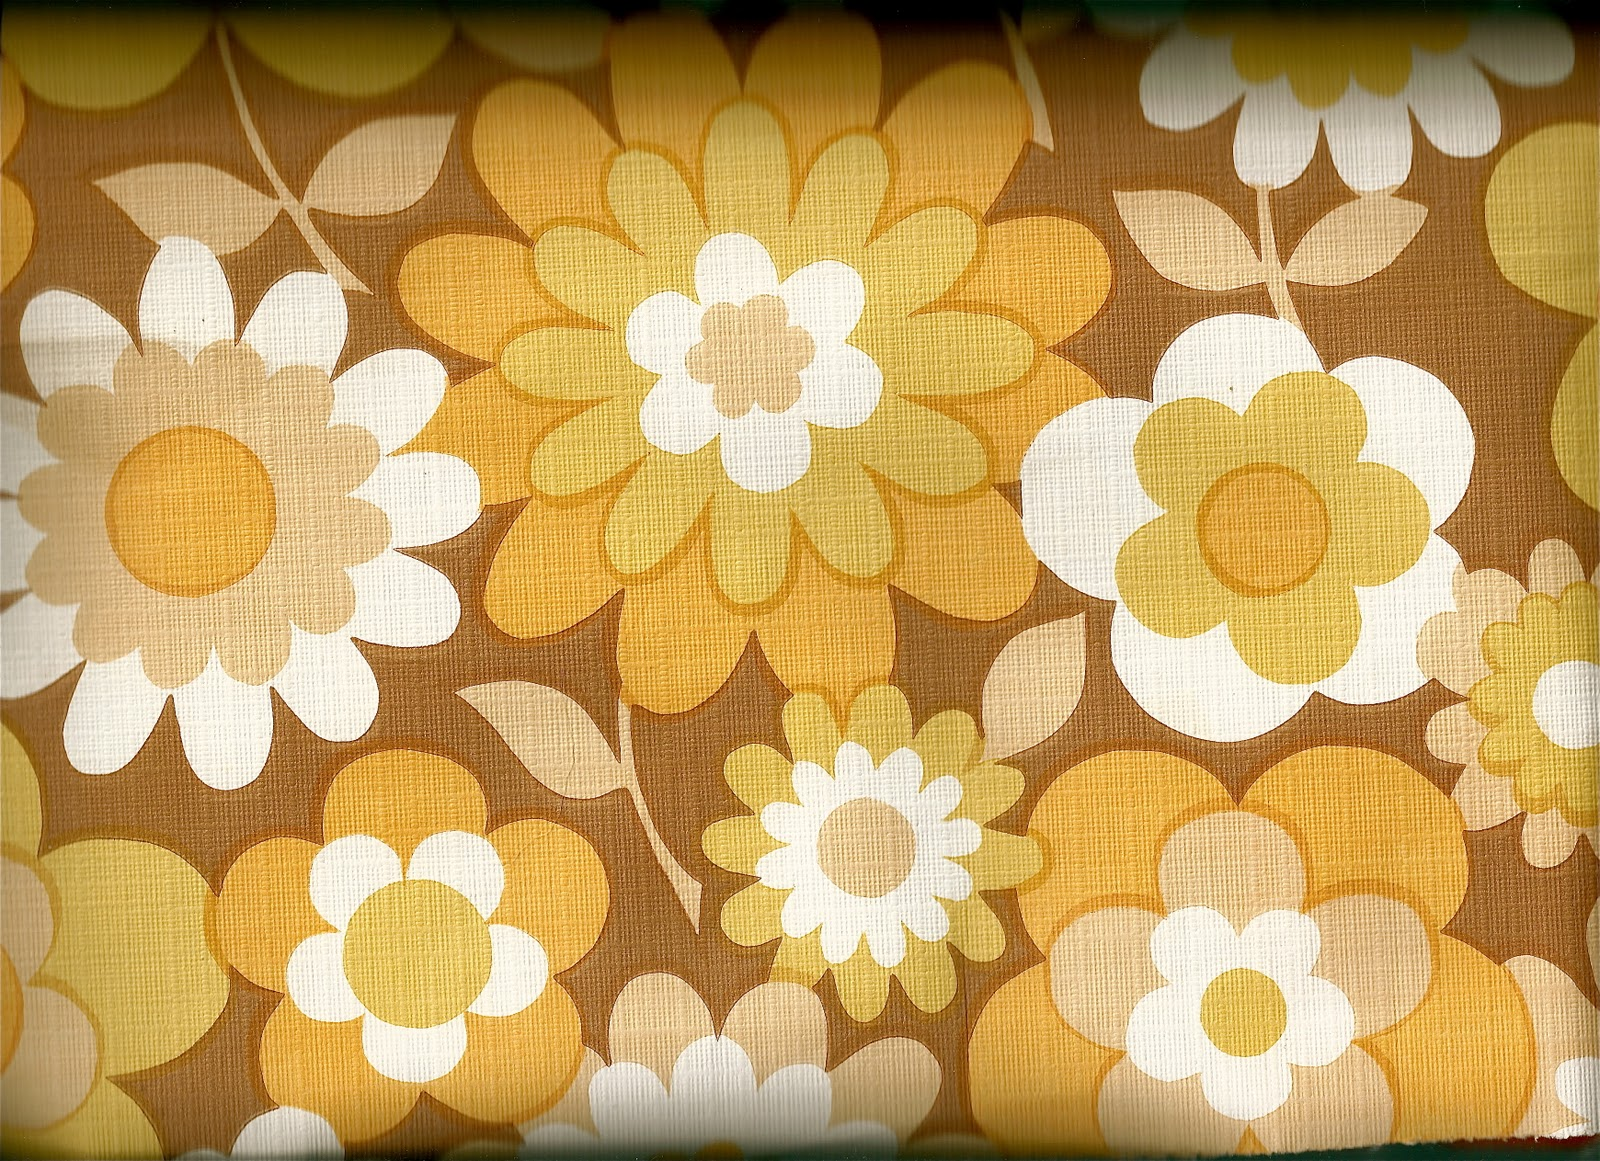 70s Wallpaper Wallpapersafari